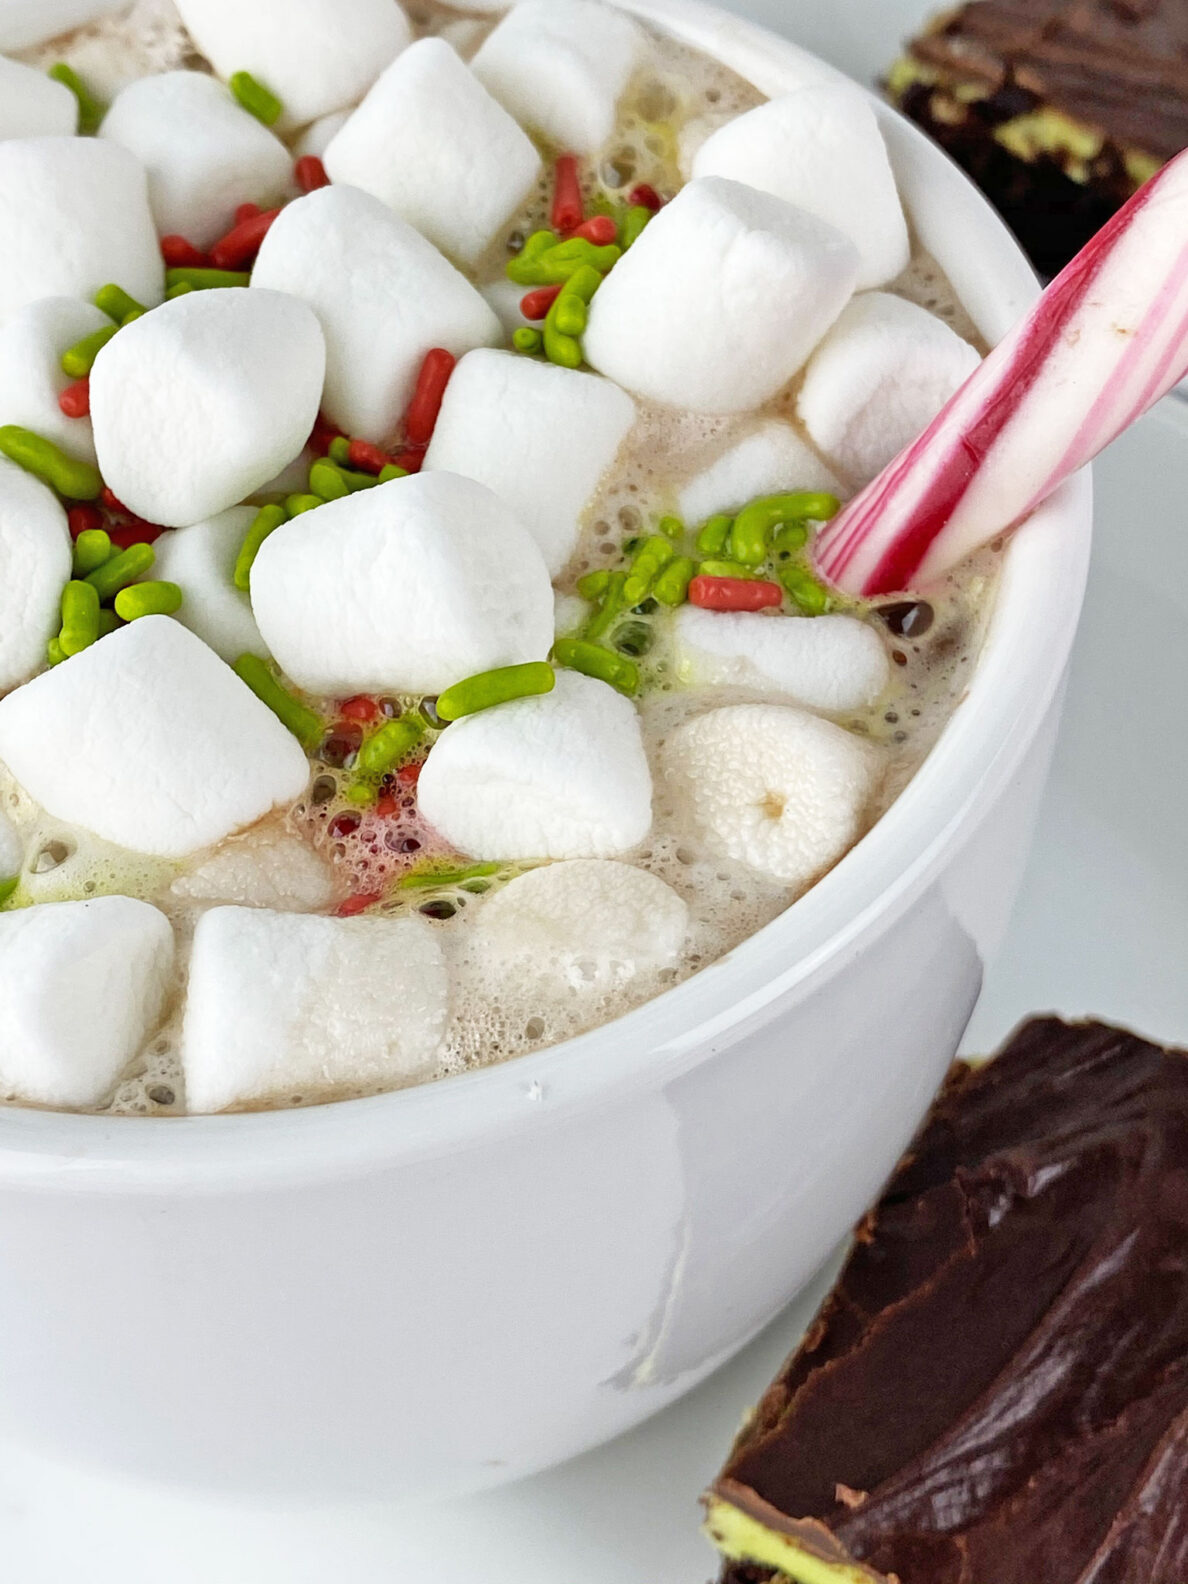 Kate's-Safe-and-Sweet---Hot-Cocoa-with-Mint-Bars